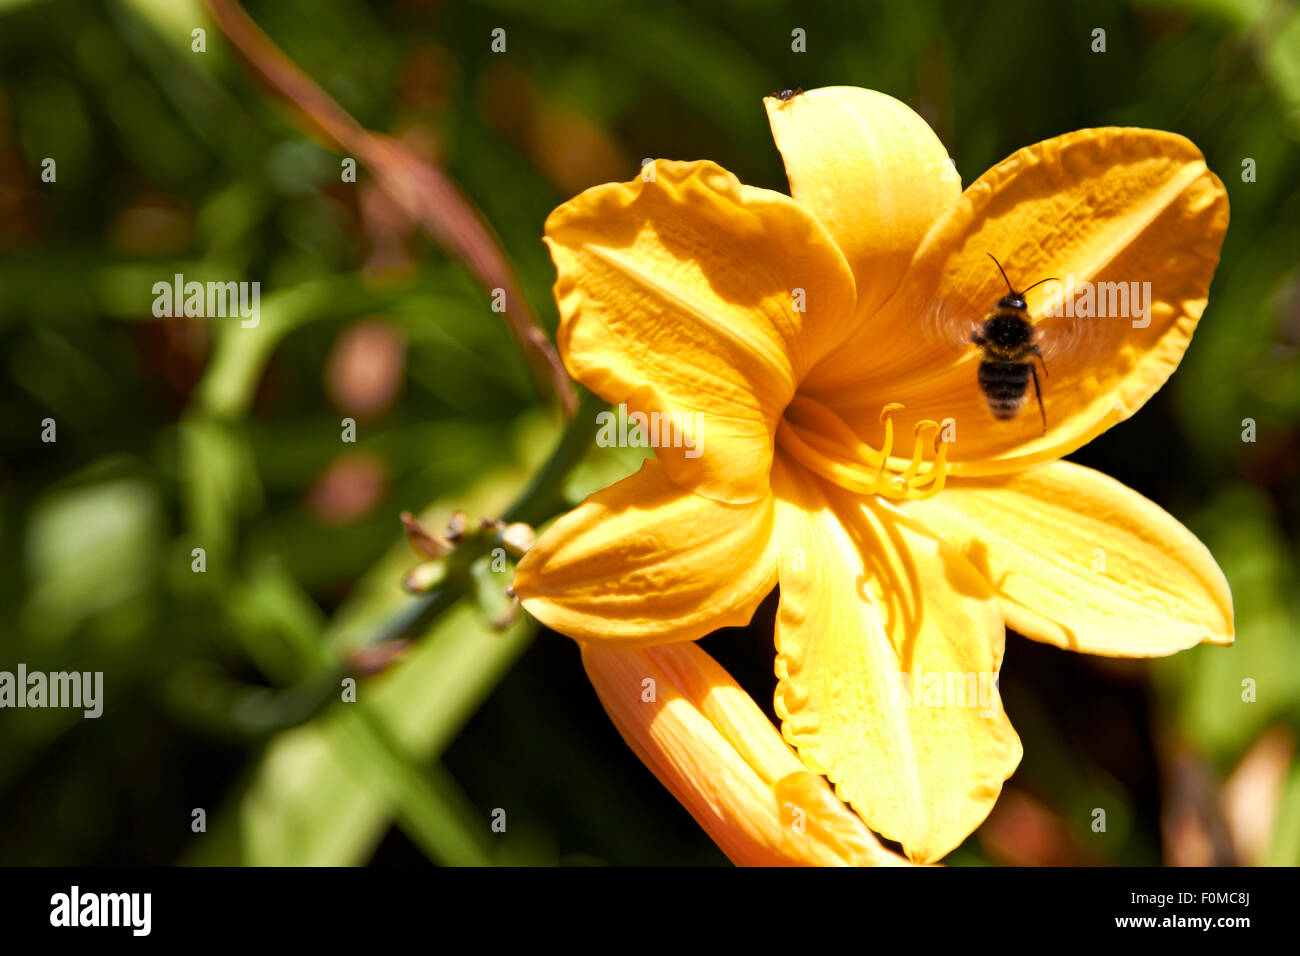 Lily Flower and Humble Bee, Nature, Garden, Outdoors, Park, Plant,Wildlife, Summer - Stock Image